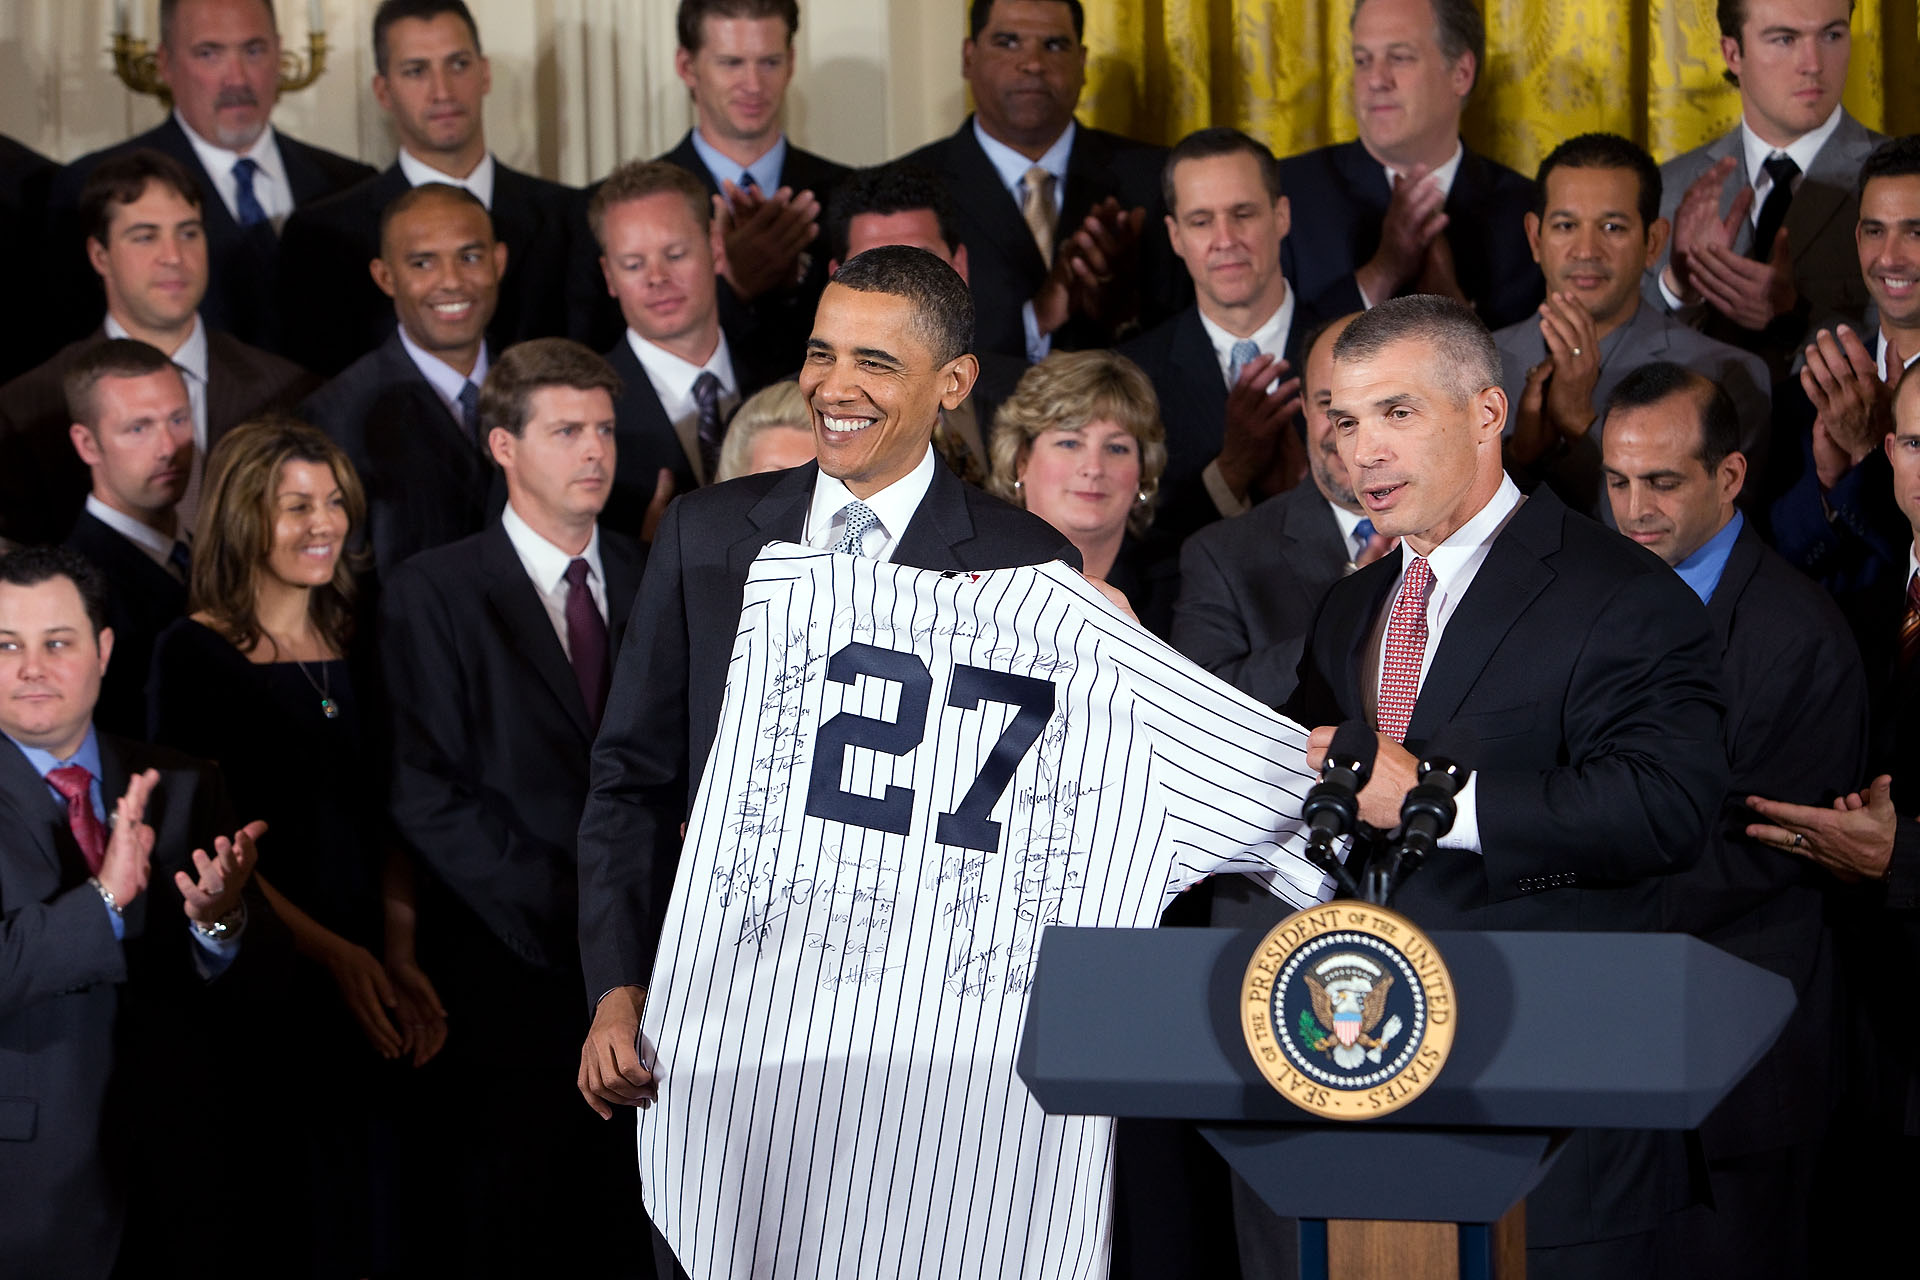 NY Yankees Manager Joe Girardi Presents President with Signed Jersey